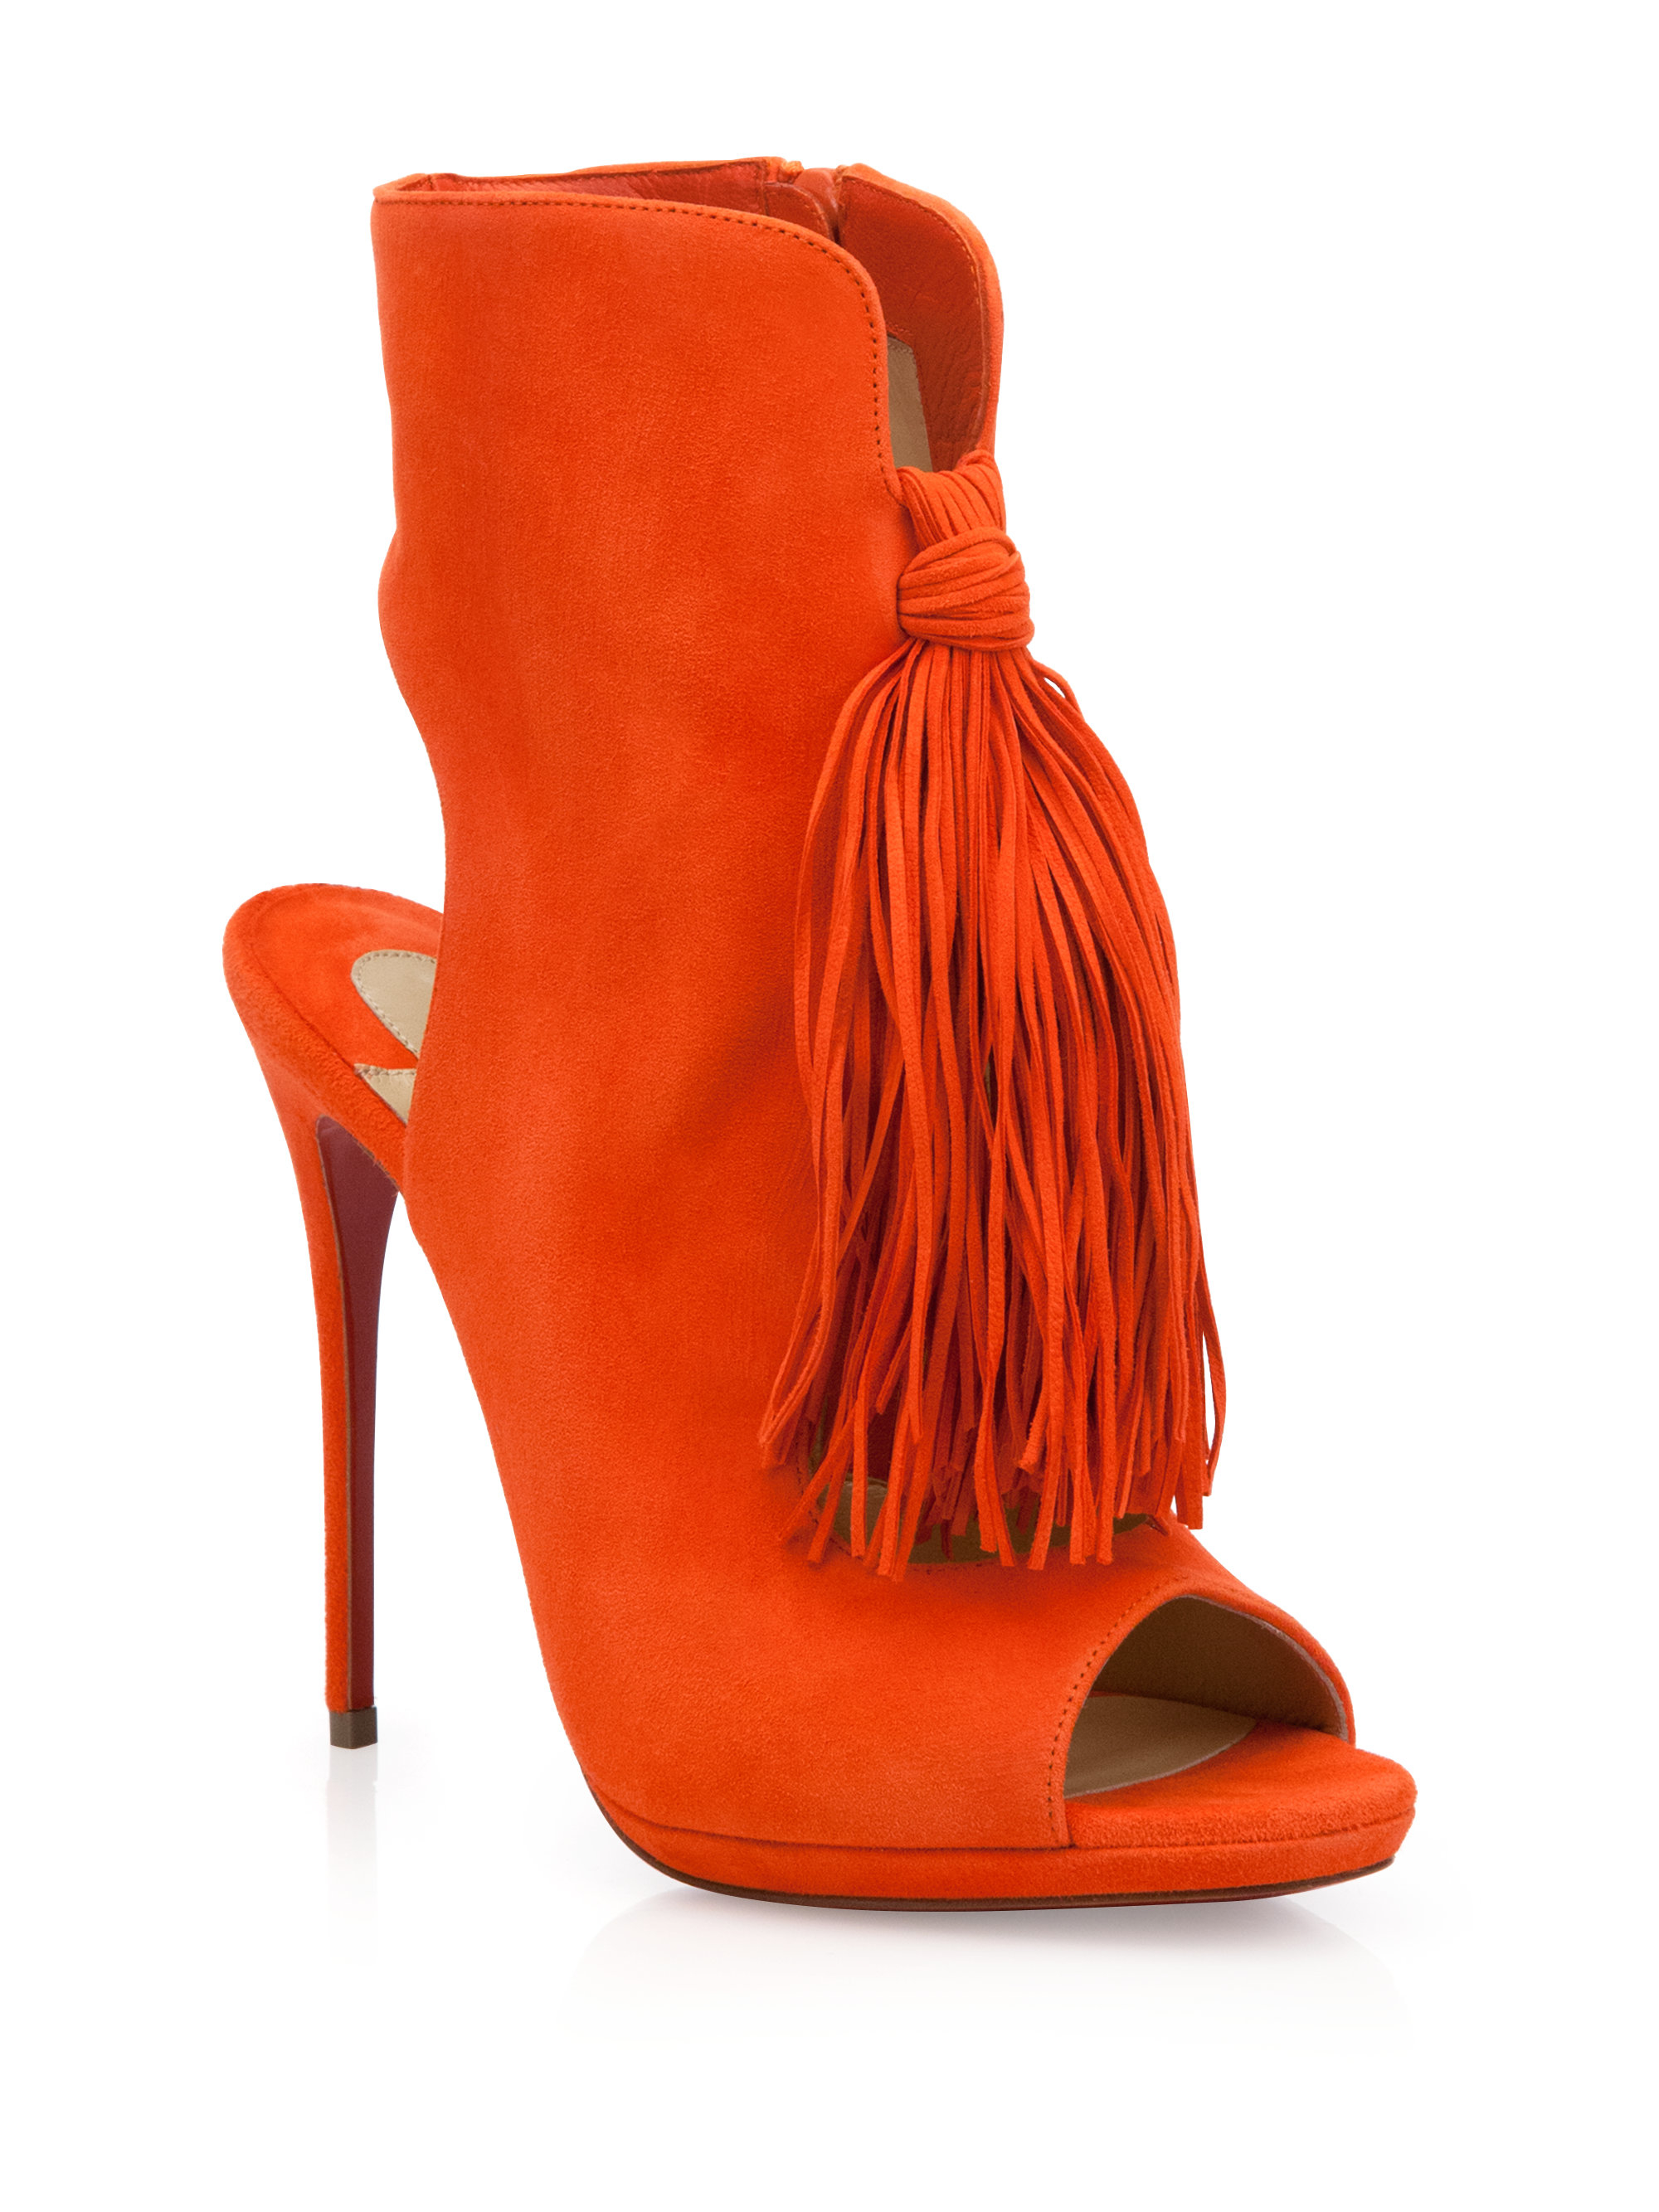 Christian Louboutin Red Fringed Suede Peep Toe Booties